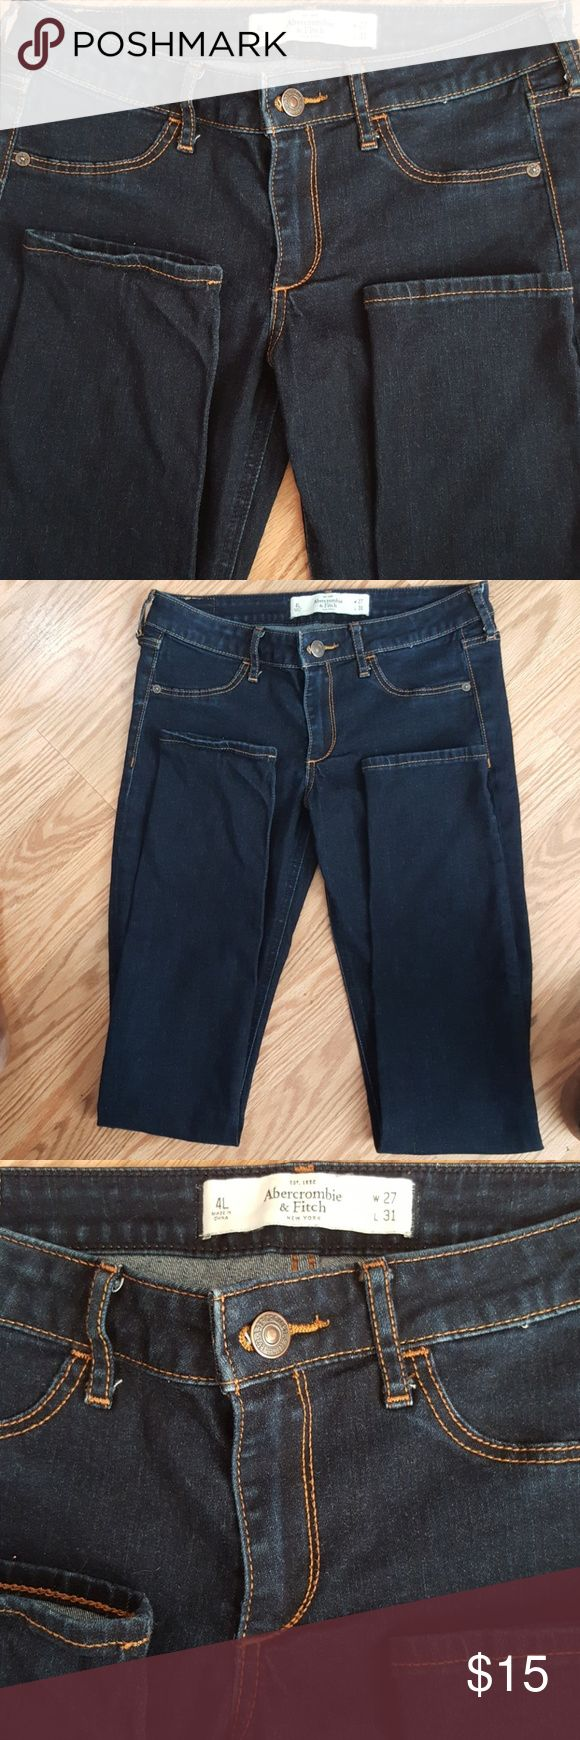 Abercrombie & Fitch Dark Blue Abercrombie and Fitch ladies jeans. W27, L31 Abercrombie & Fitch Jeans Skinny